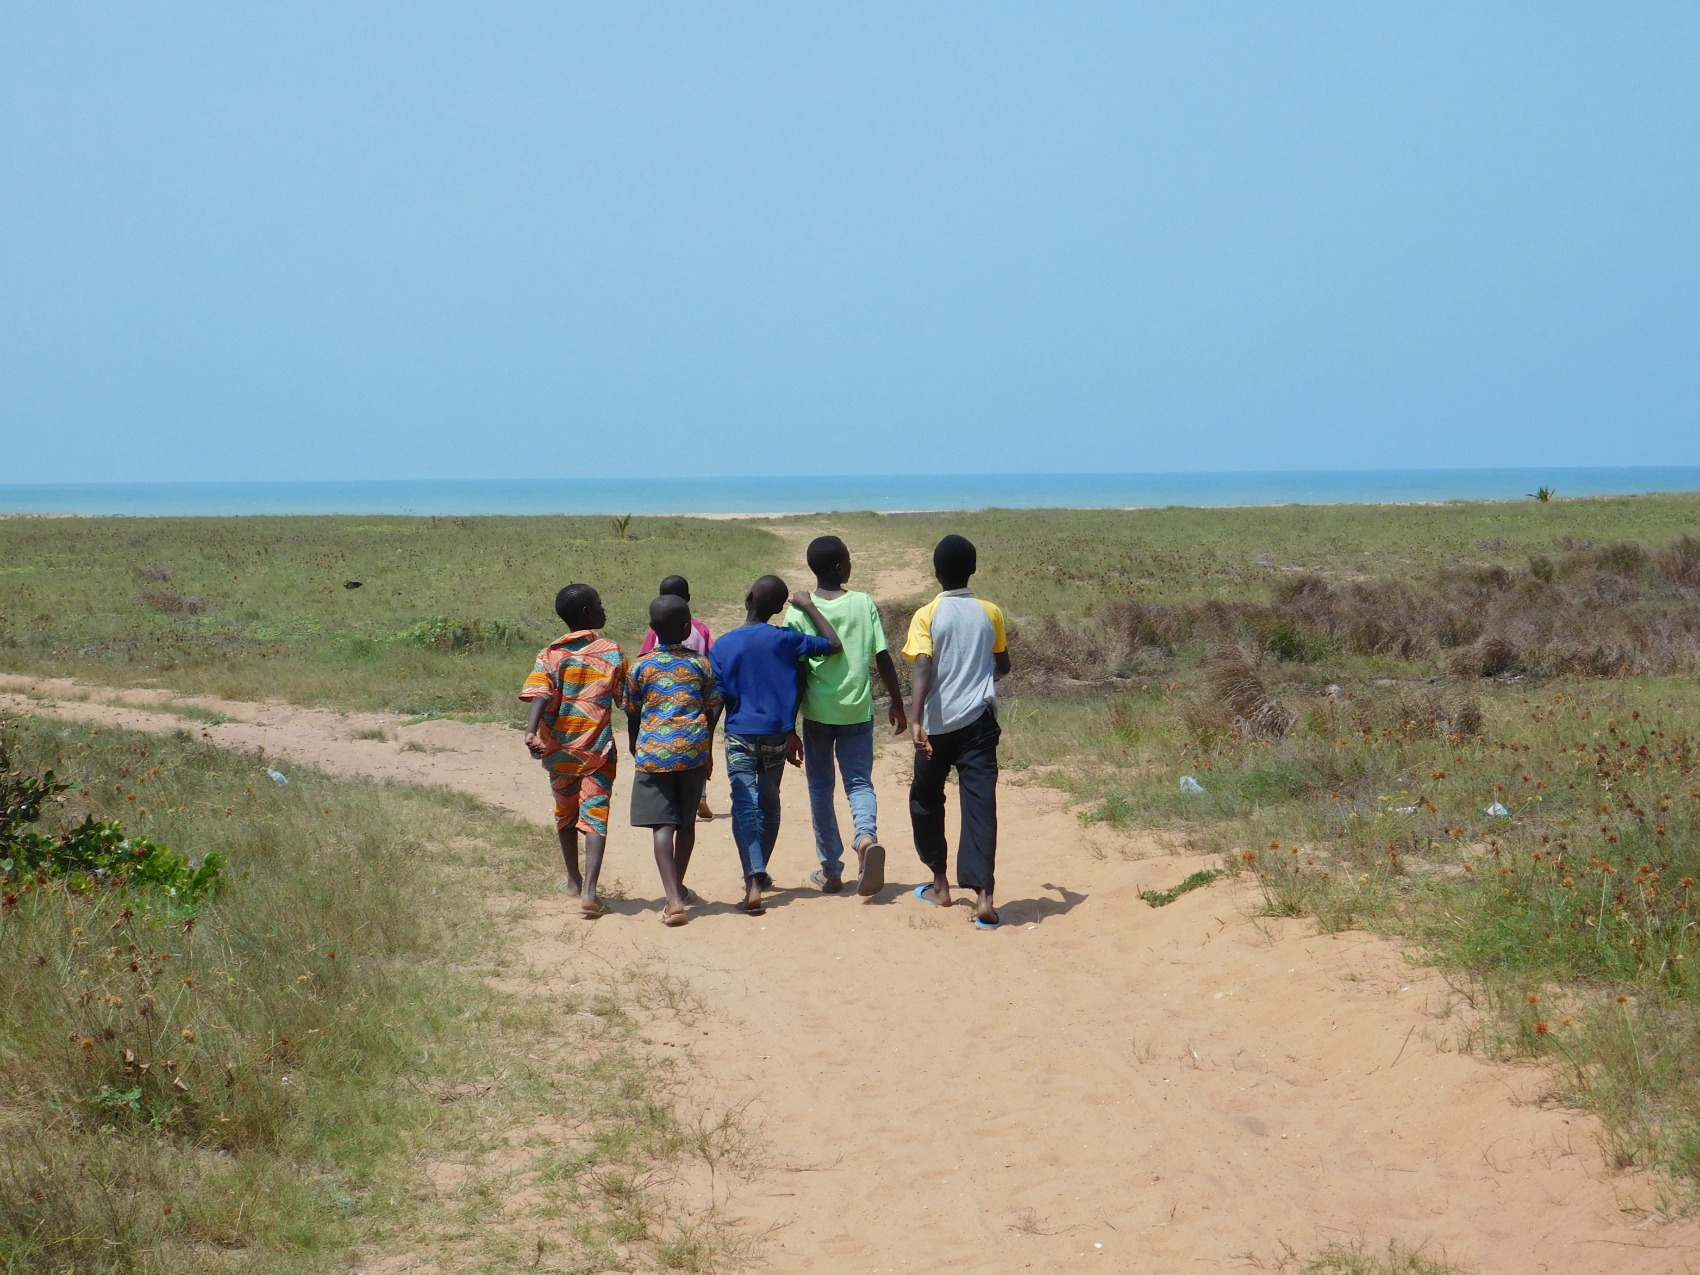 Local+children+in+Anloga+walking+and+laughing+on+their+way+to+the+beach.+